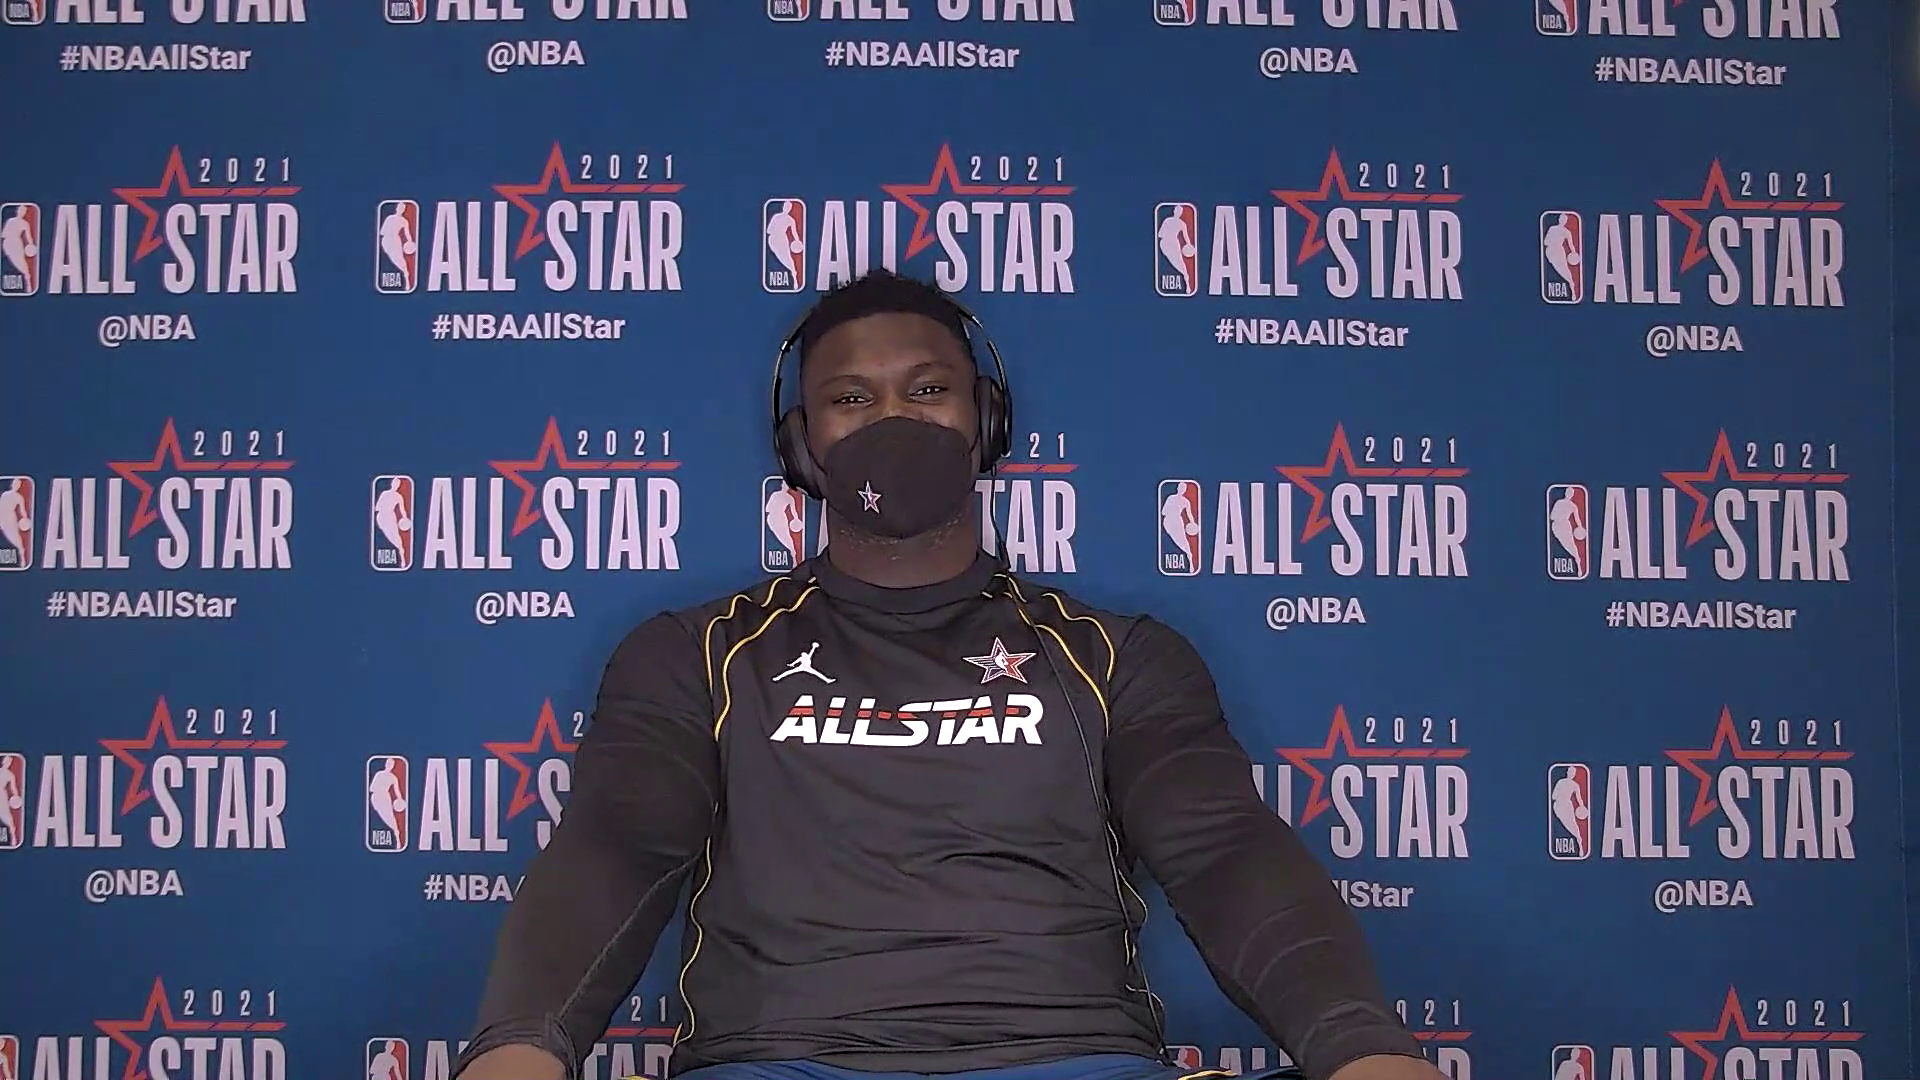 Zion Williamson talks about his first NBA All-Star Game experience | 2021 NBA All-Star